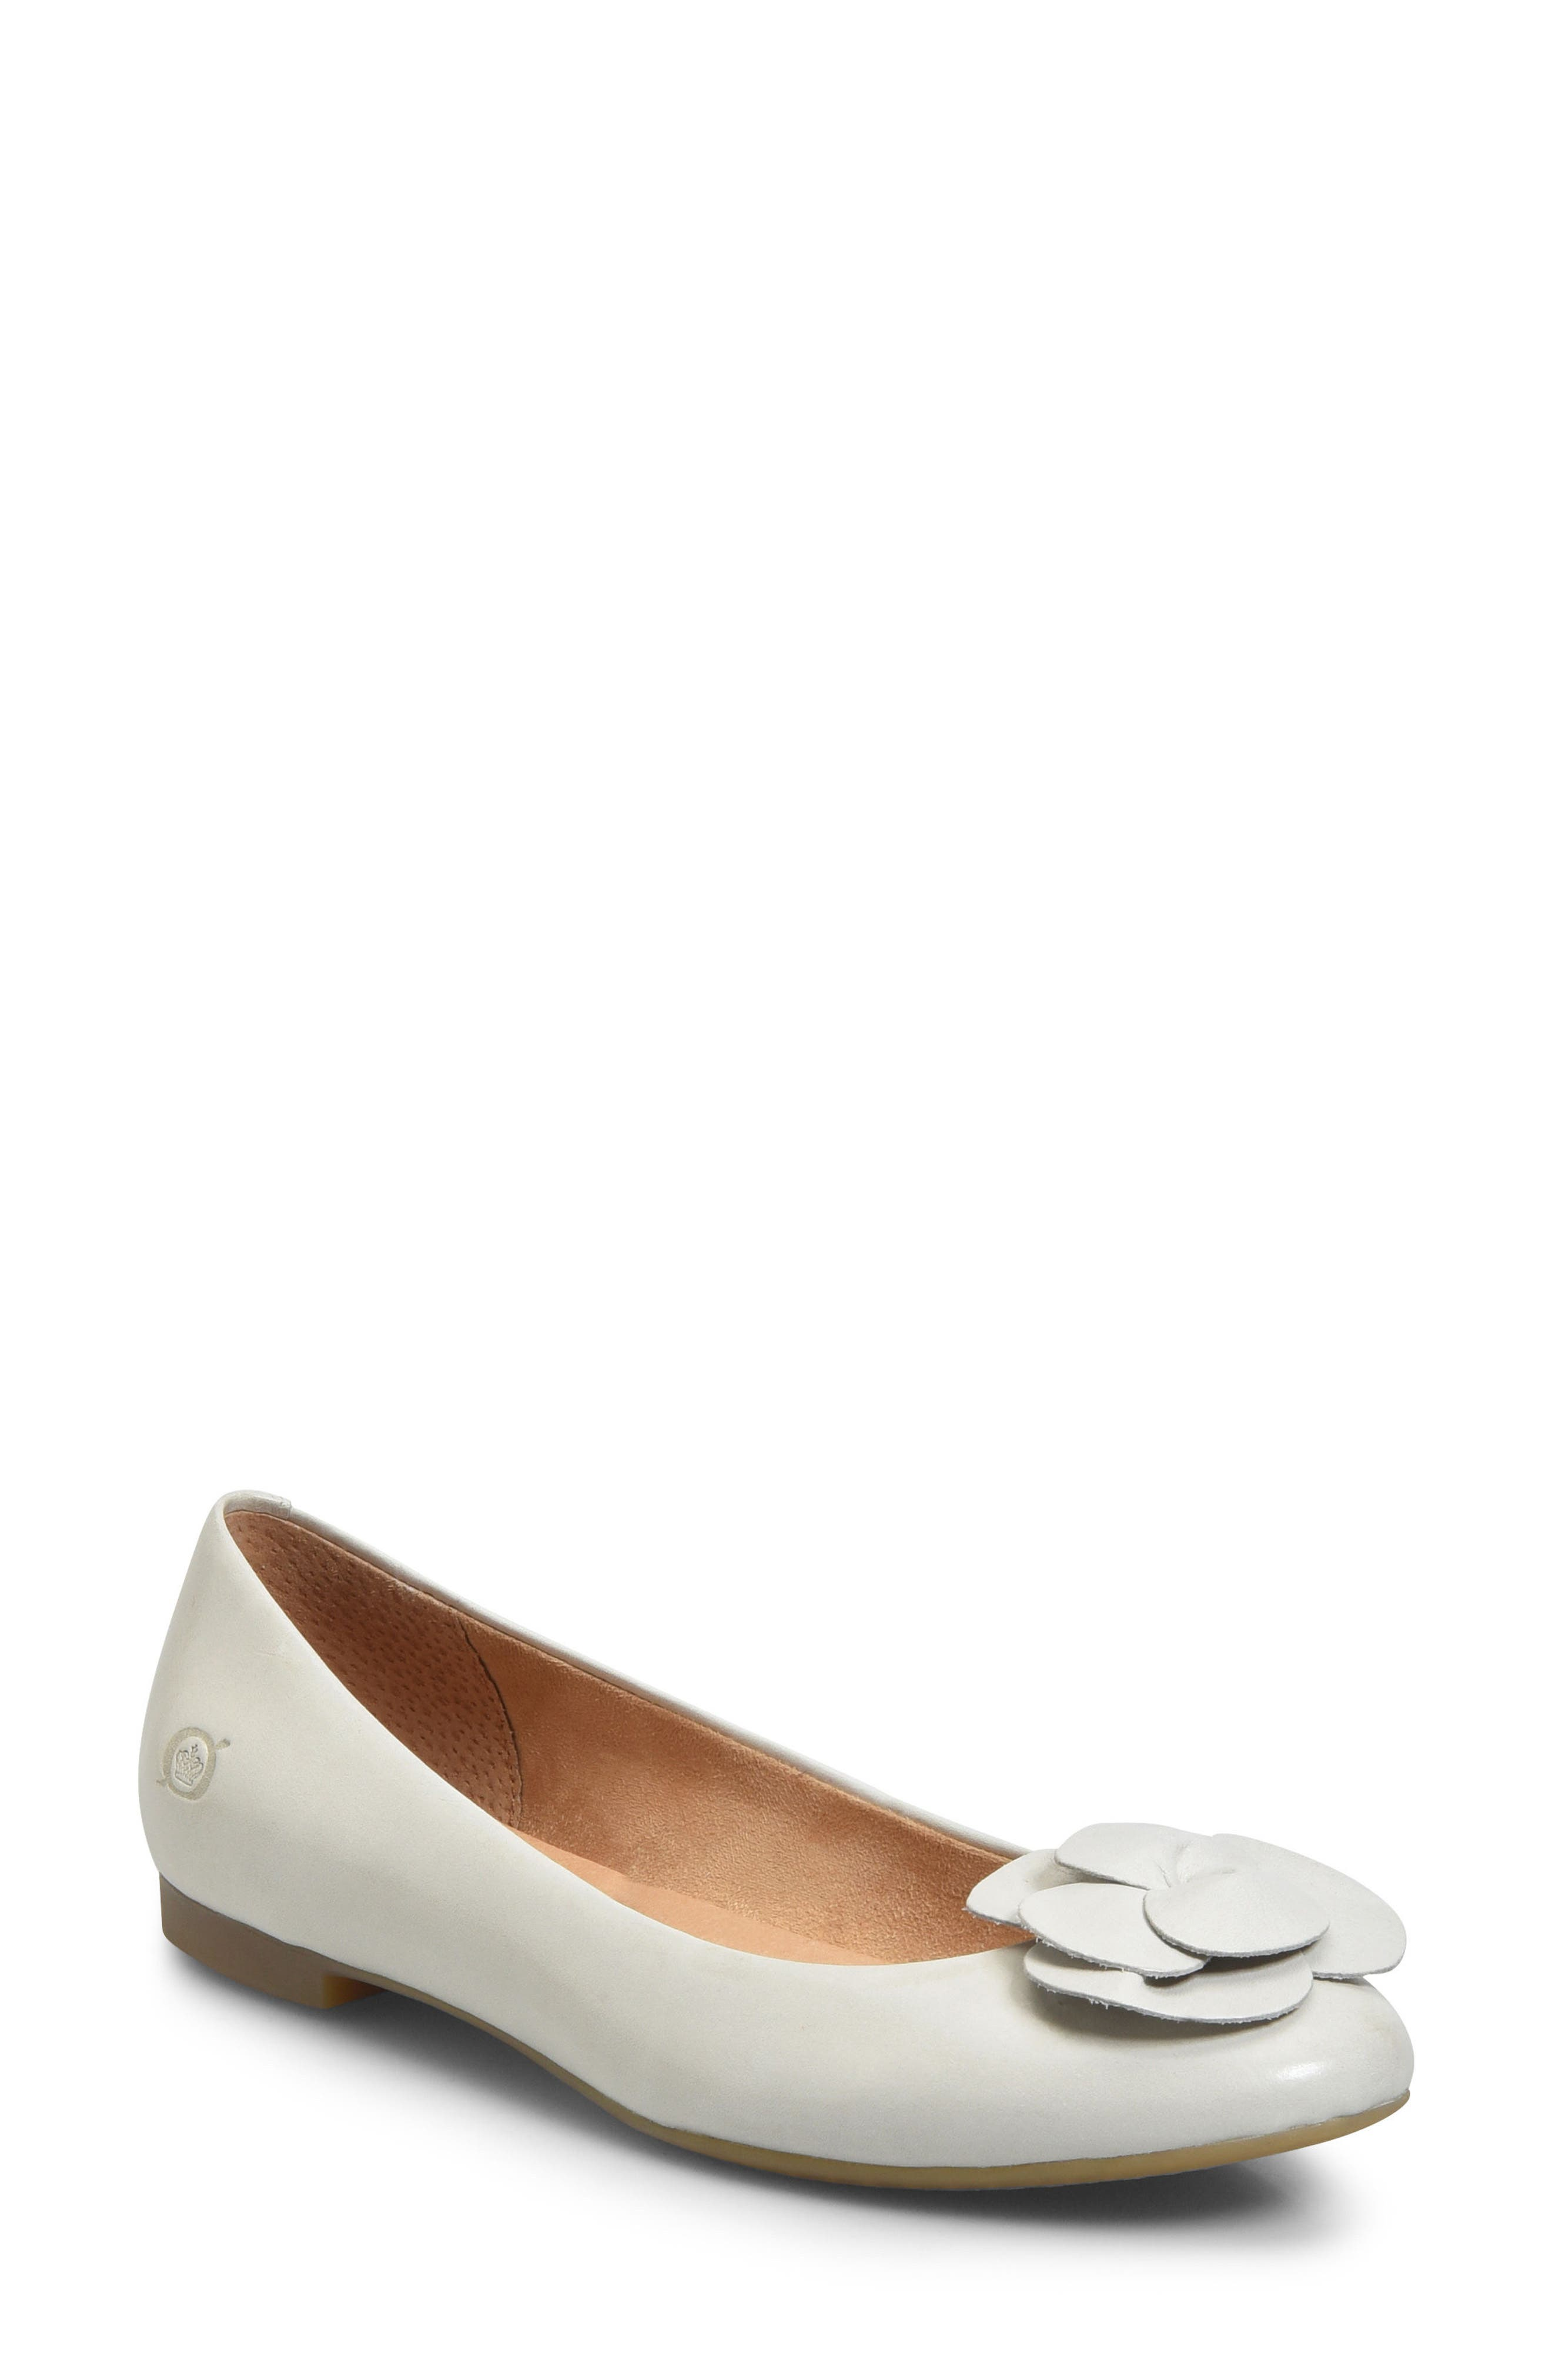 Annelie Flat,                             Main thumbnail 1, color,                             White Leather